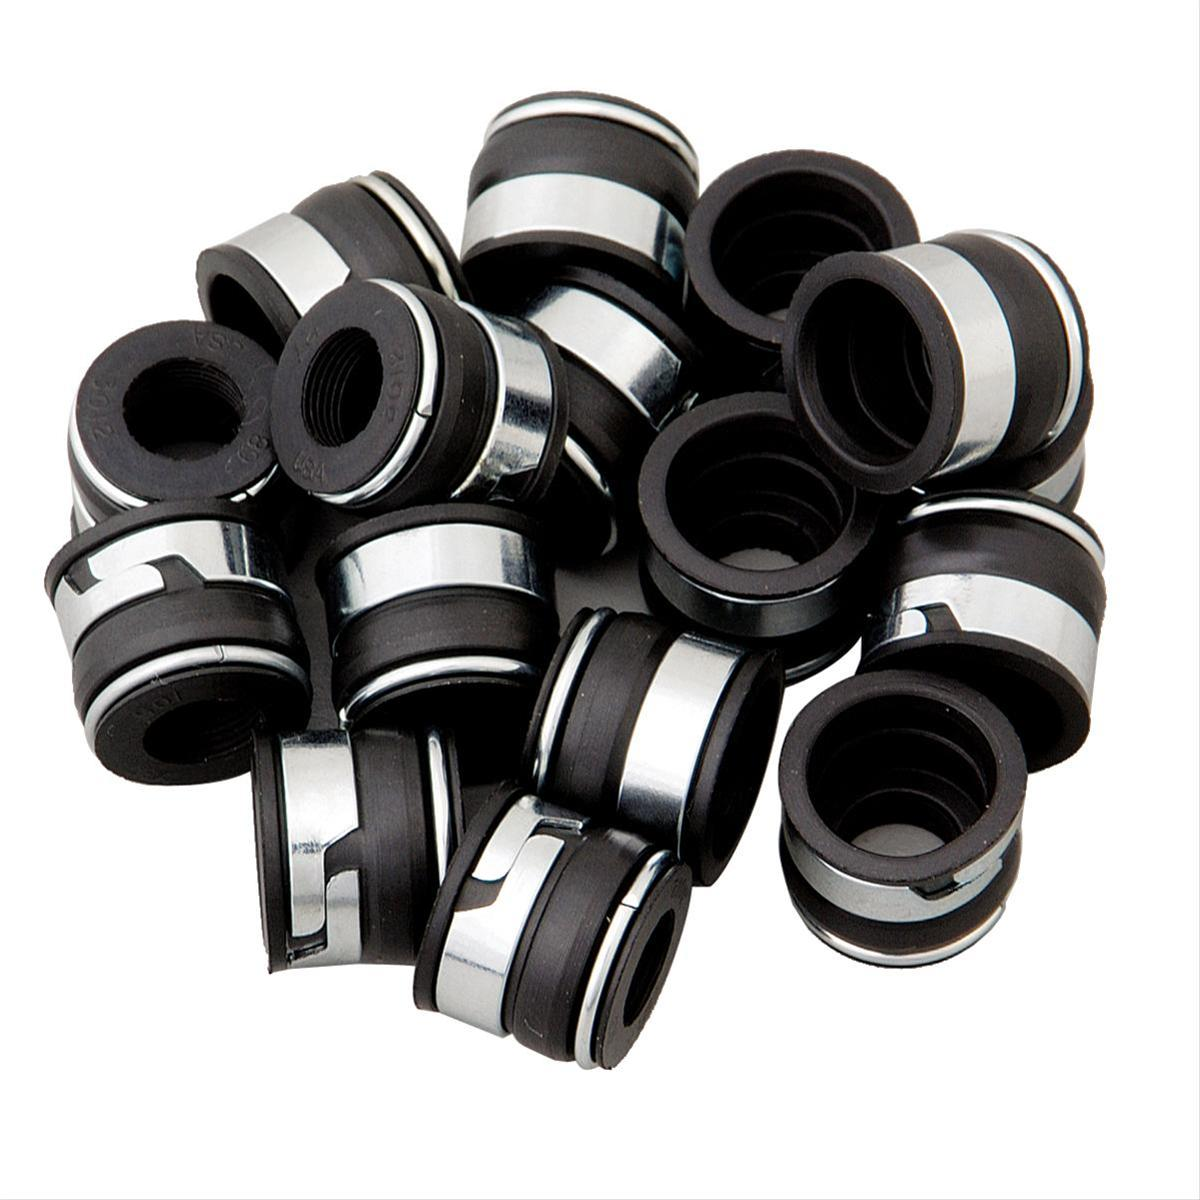 Trick Flow® Valve Seals TFS-51400454 - Free Shipping on Orders Over $99 at  Summit Racing